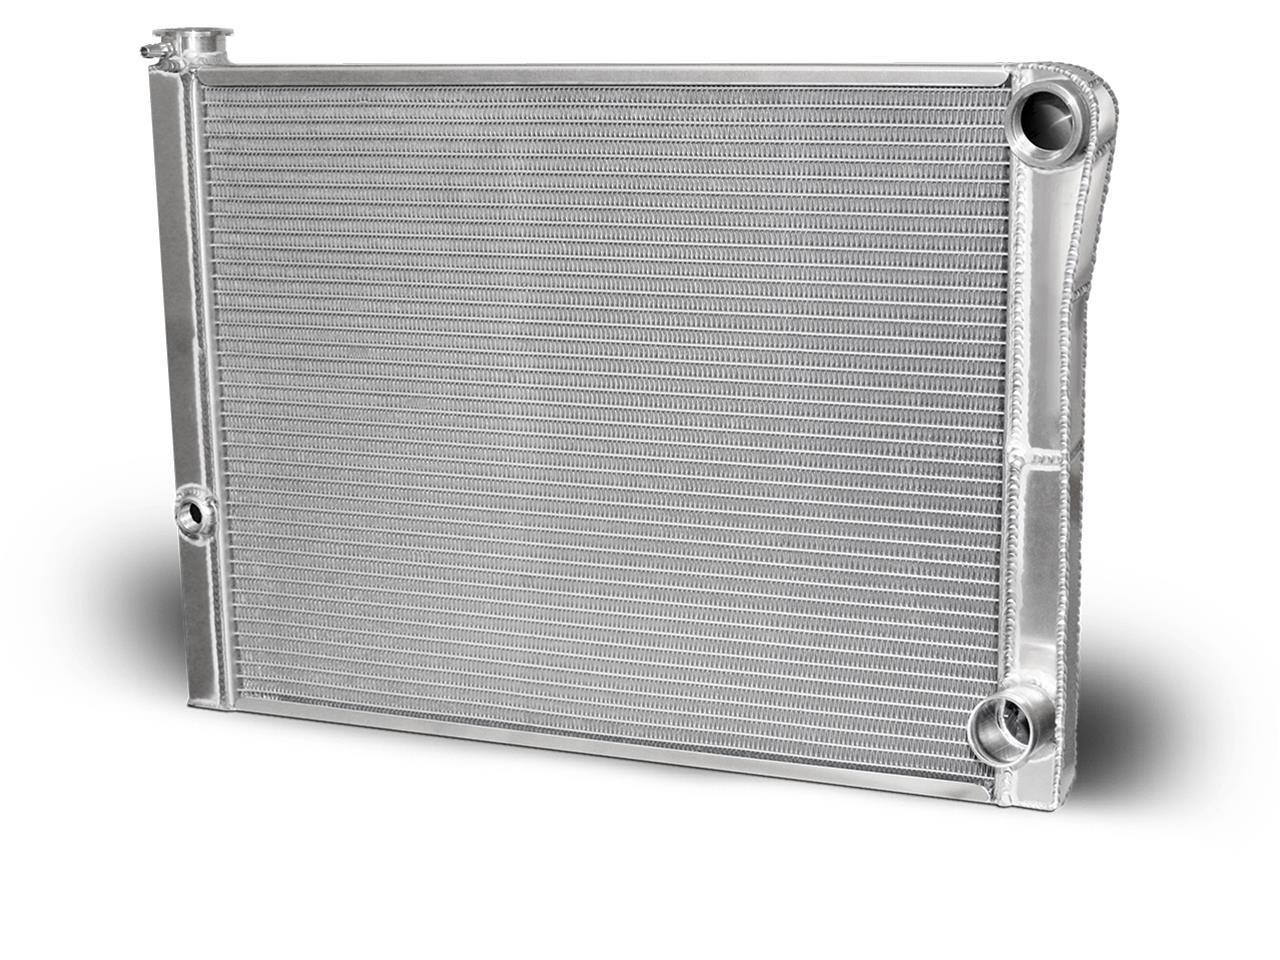 "AFCO Chevy Radiator - 19"" x 26"" - Double Pass - Univ Inlet"